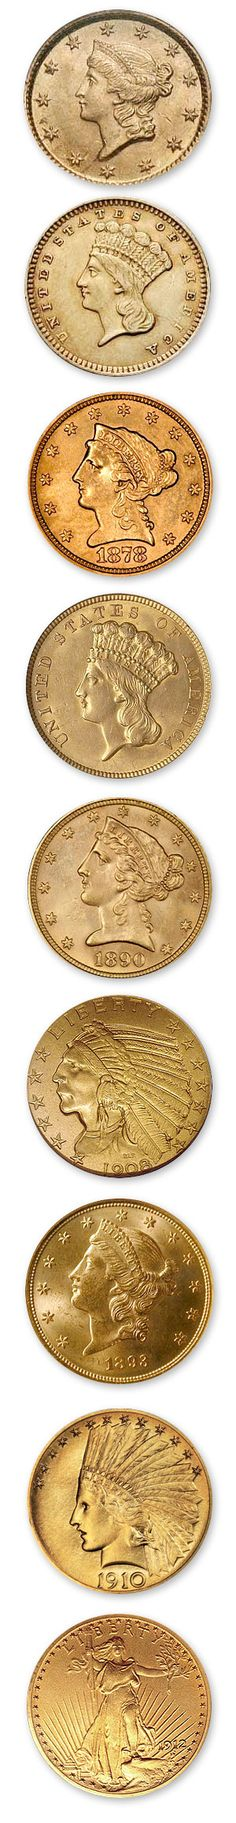 US gold coins from the dollar Liberty Head to the 20 dollar St Gaudens double eagle.